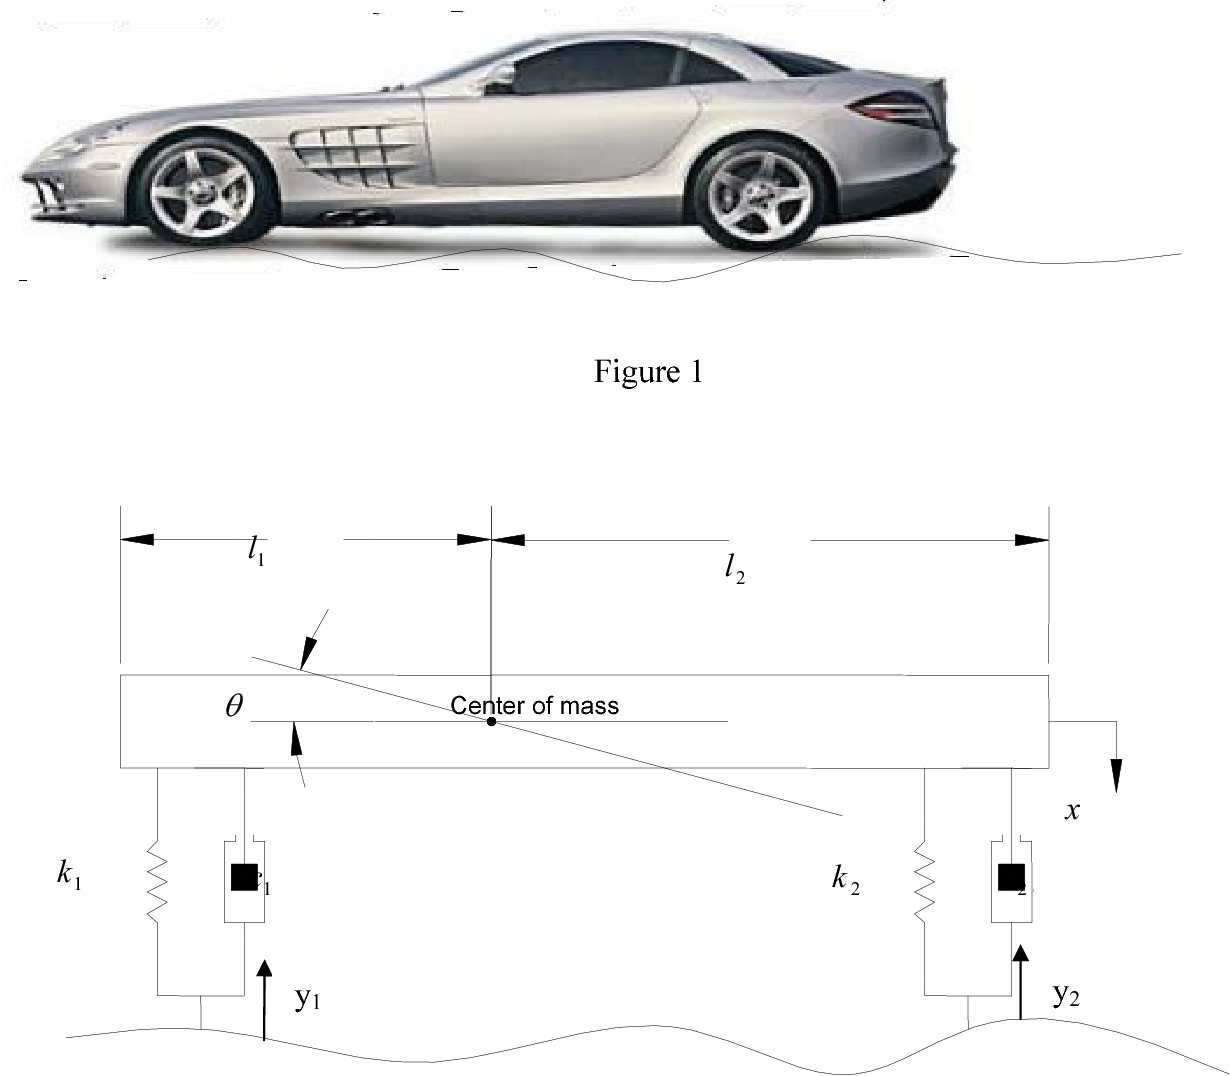 Pdf Analysis And Design Of Vehicle Suspension System Using Matlab And Simulink Semantic Scholar